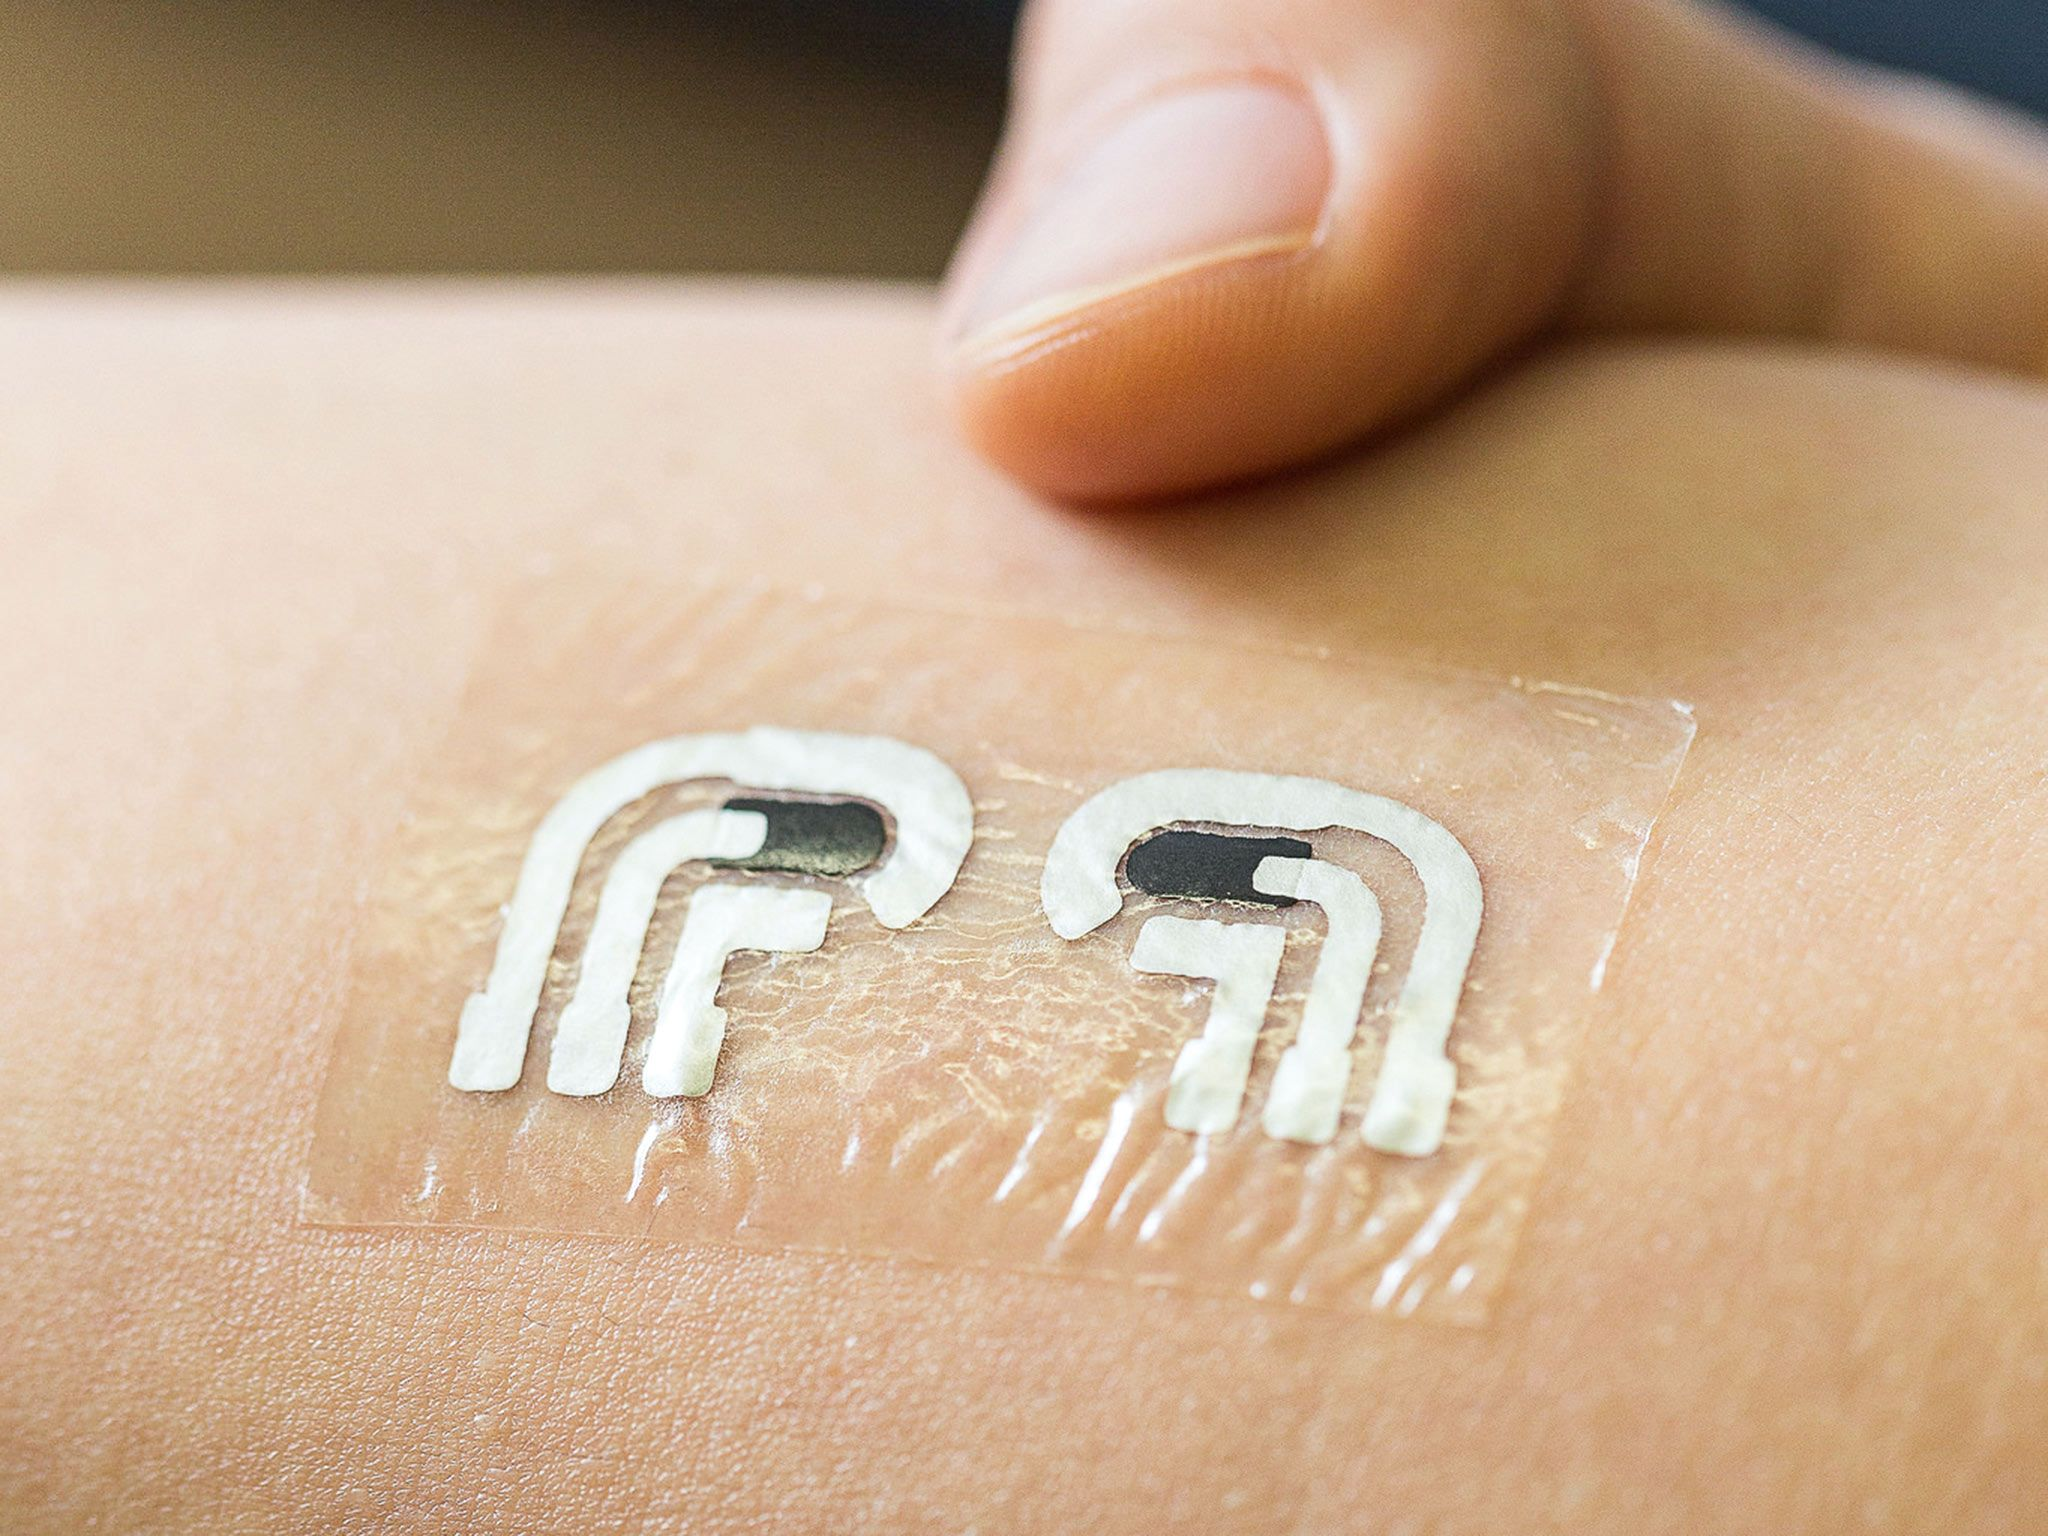 Temporary tattoo measures blood glucose levels Blood